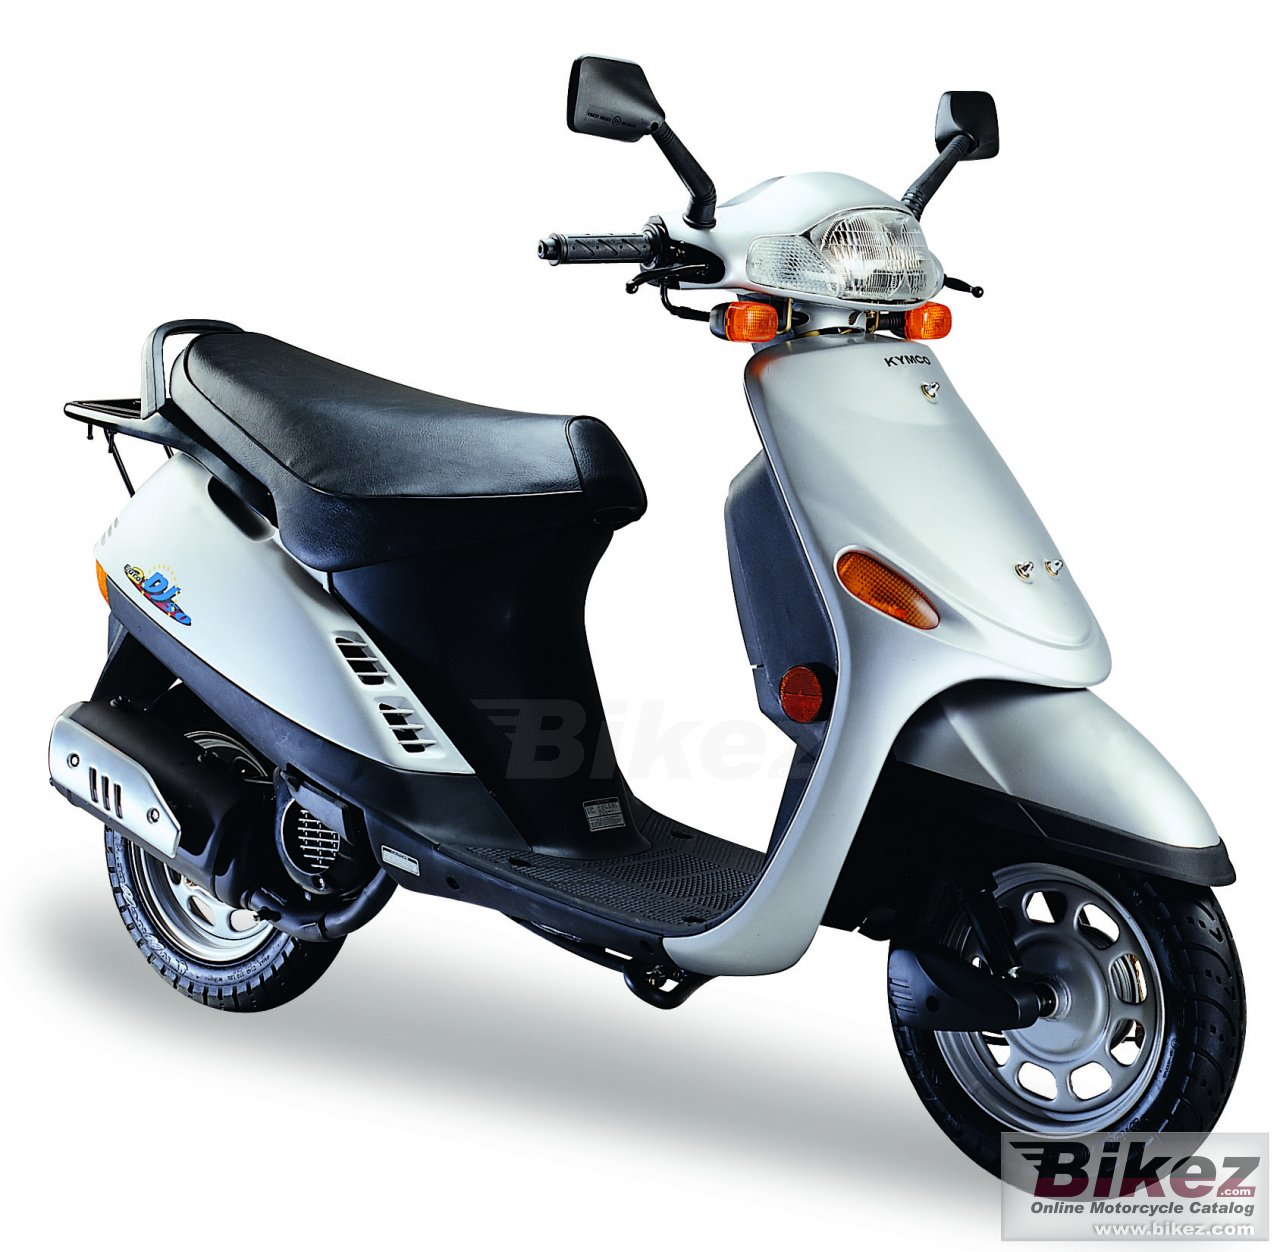 Big Kymco dj refined 50 picture and wallpaper from Bikez.com